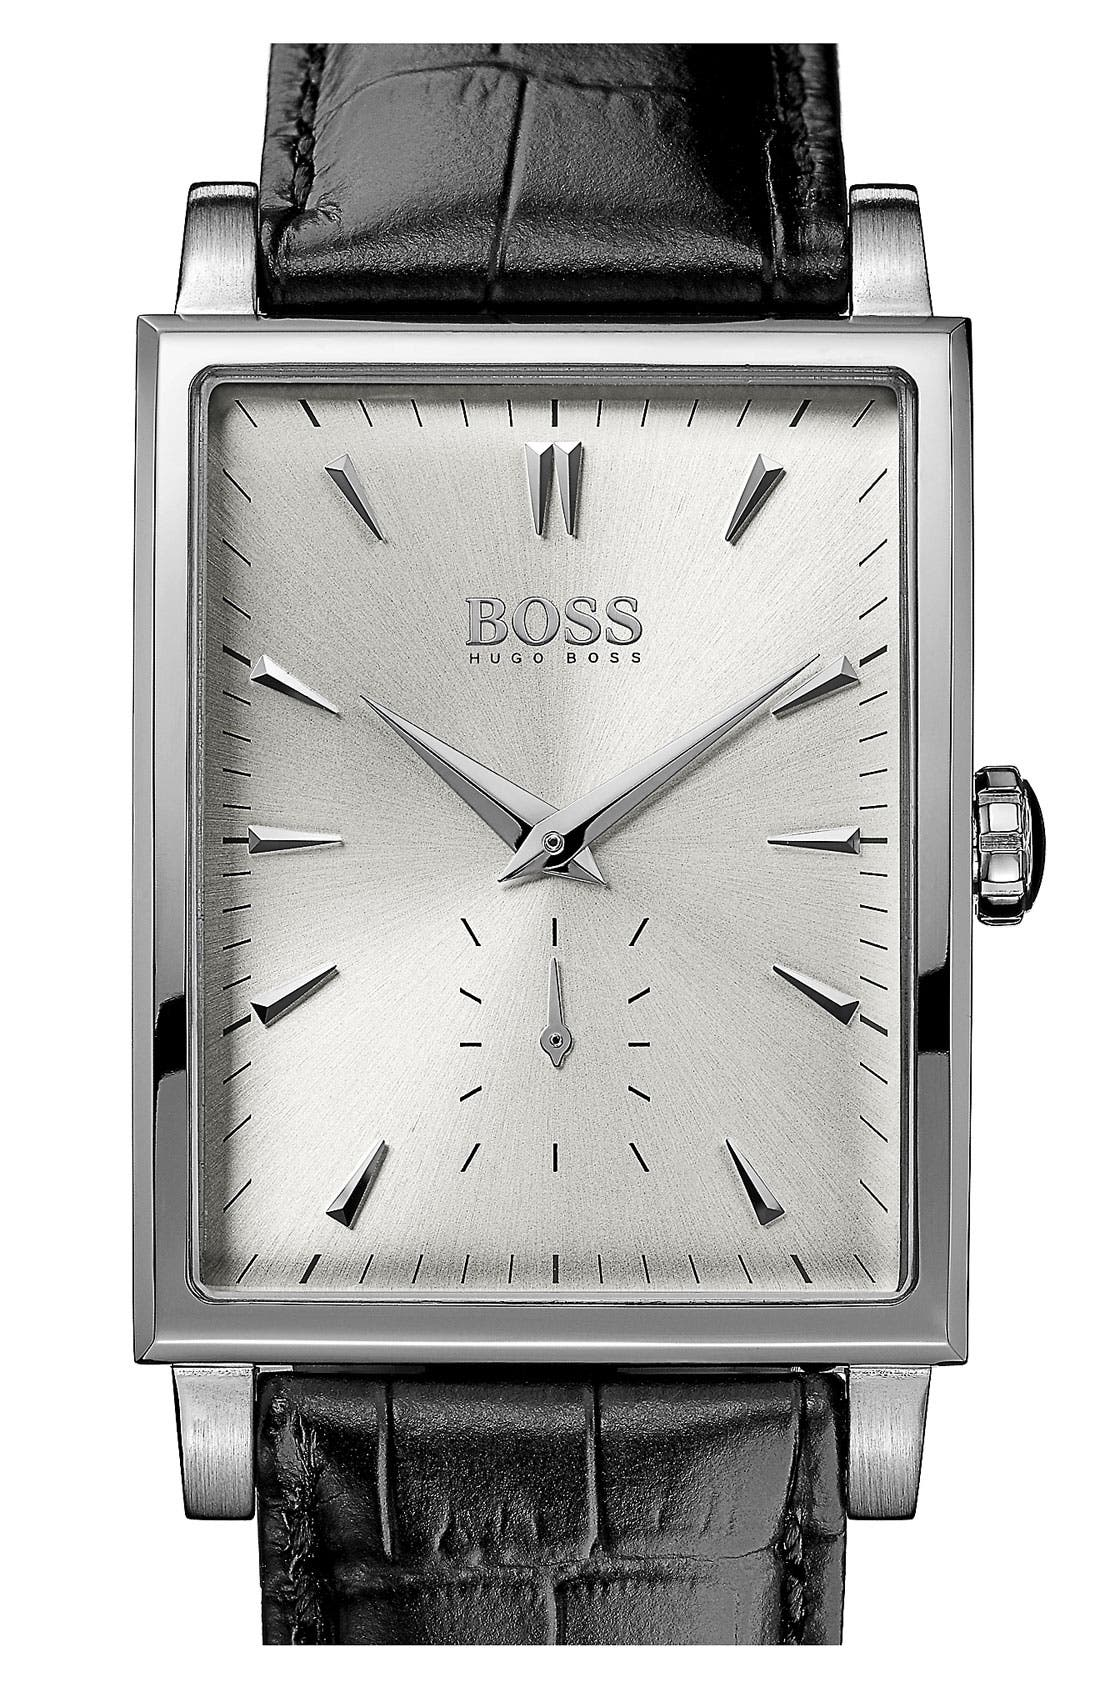 Main Image - BOSS HUGO BOSS Rectangular Leather Strap Watch, 31mm x 39mm